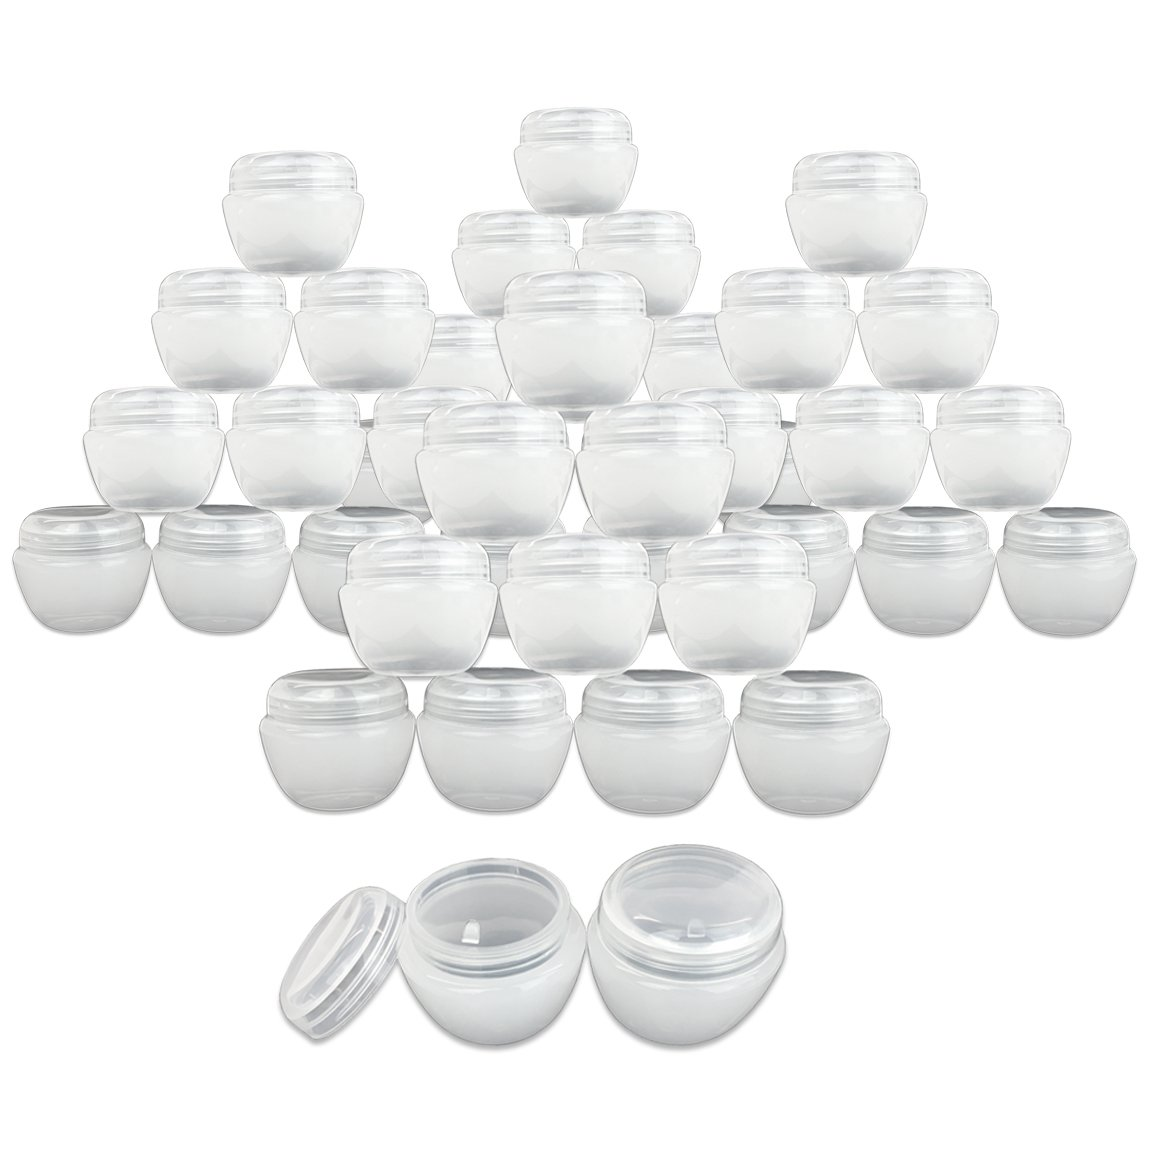 Beauticom 50G/50ML White Frosted Container Jars with Inner Liner for Scrubs, Oils, Salves, Creams, Lotions, Makeup Cosmetics, Nail Accessories, Beauty Aids - BPA Free (72 Pieces)